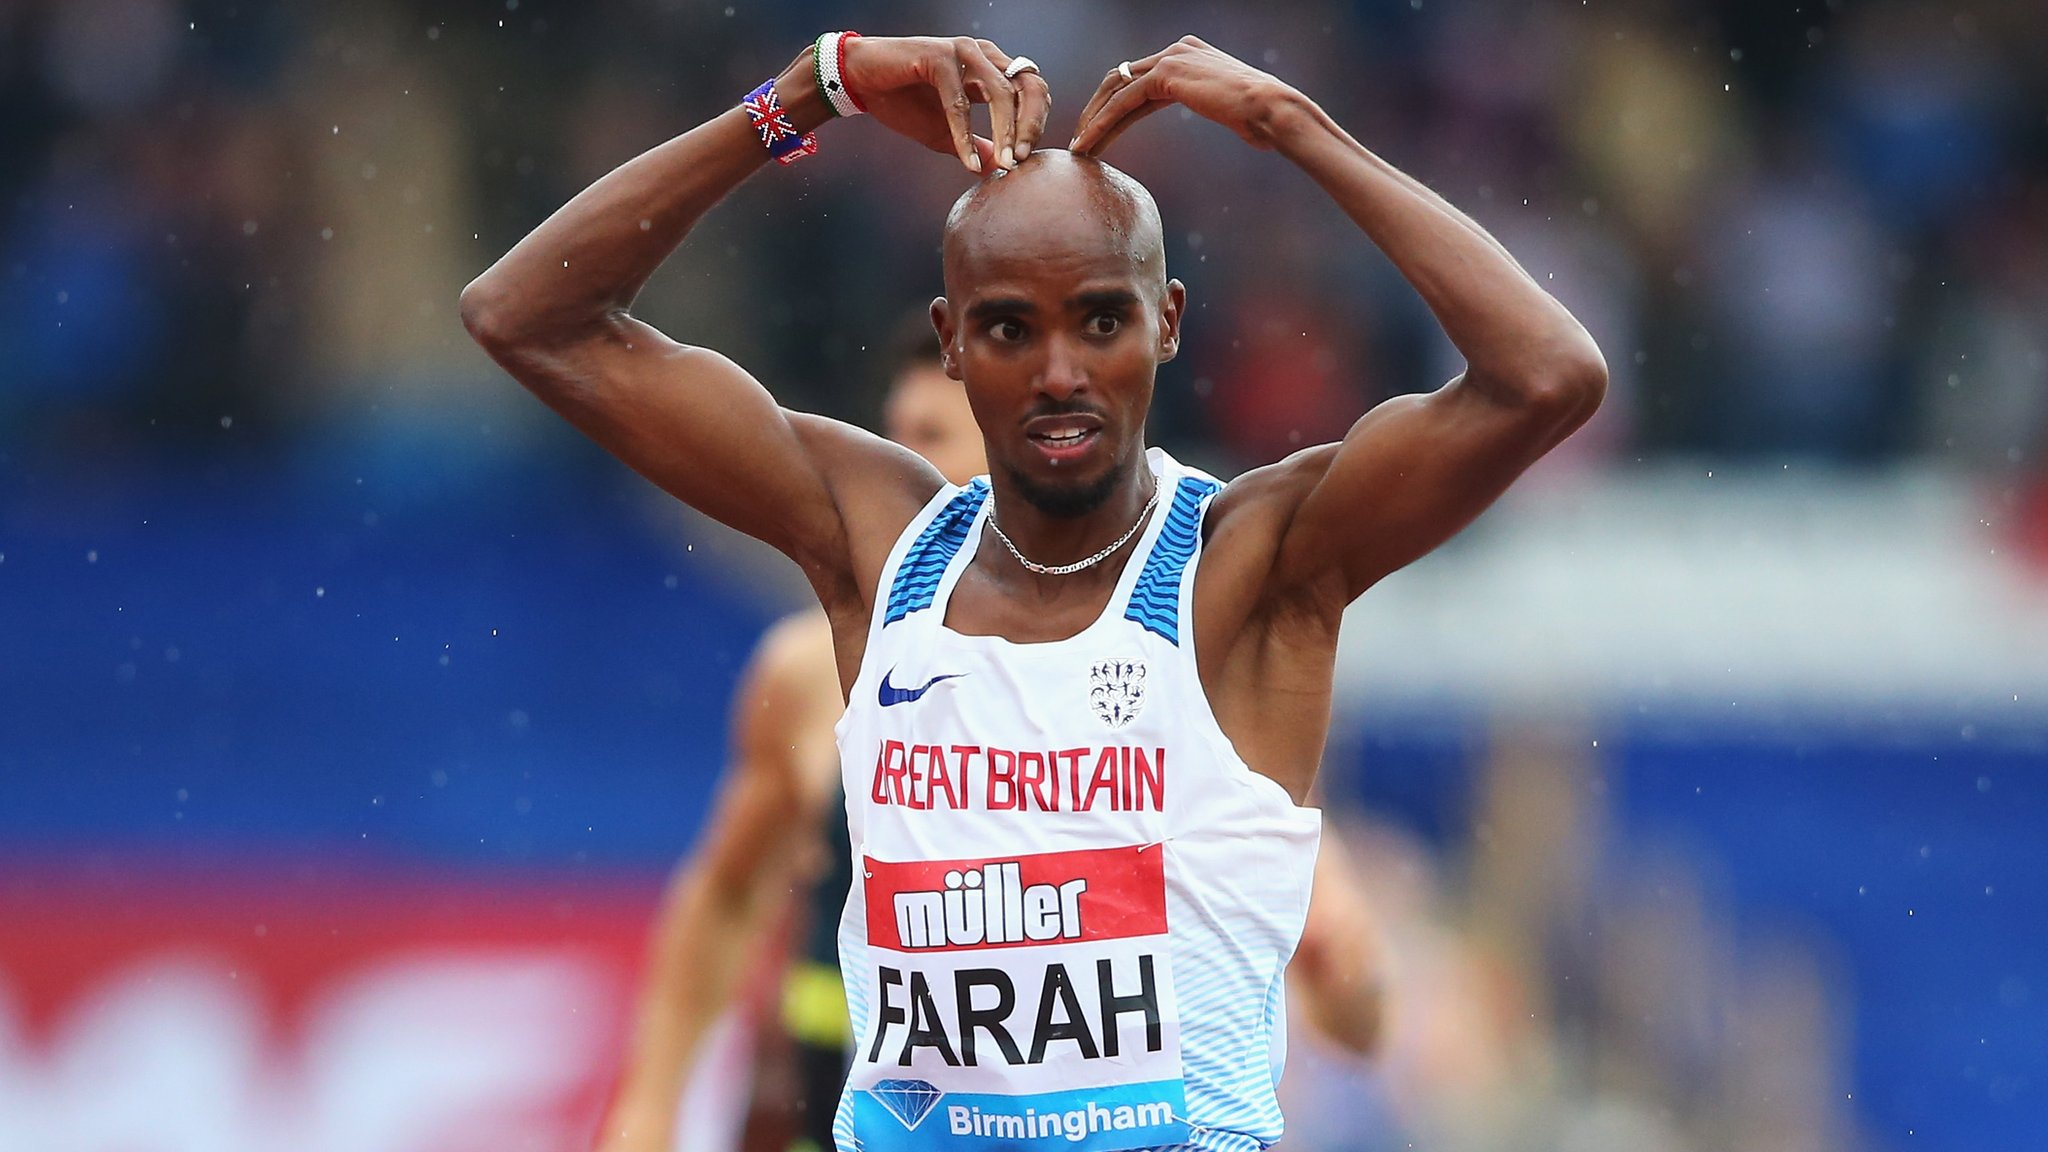 Farah wins final track race in Britain - highlights & report